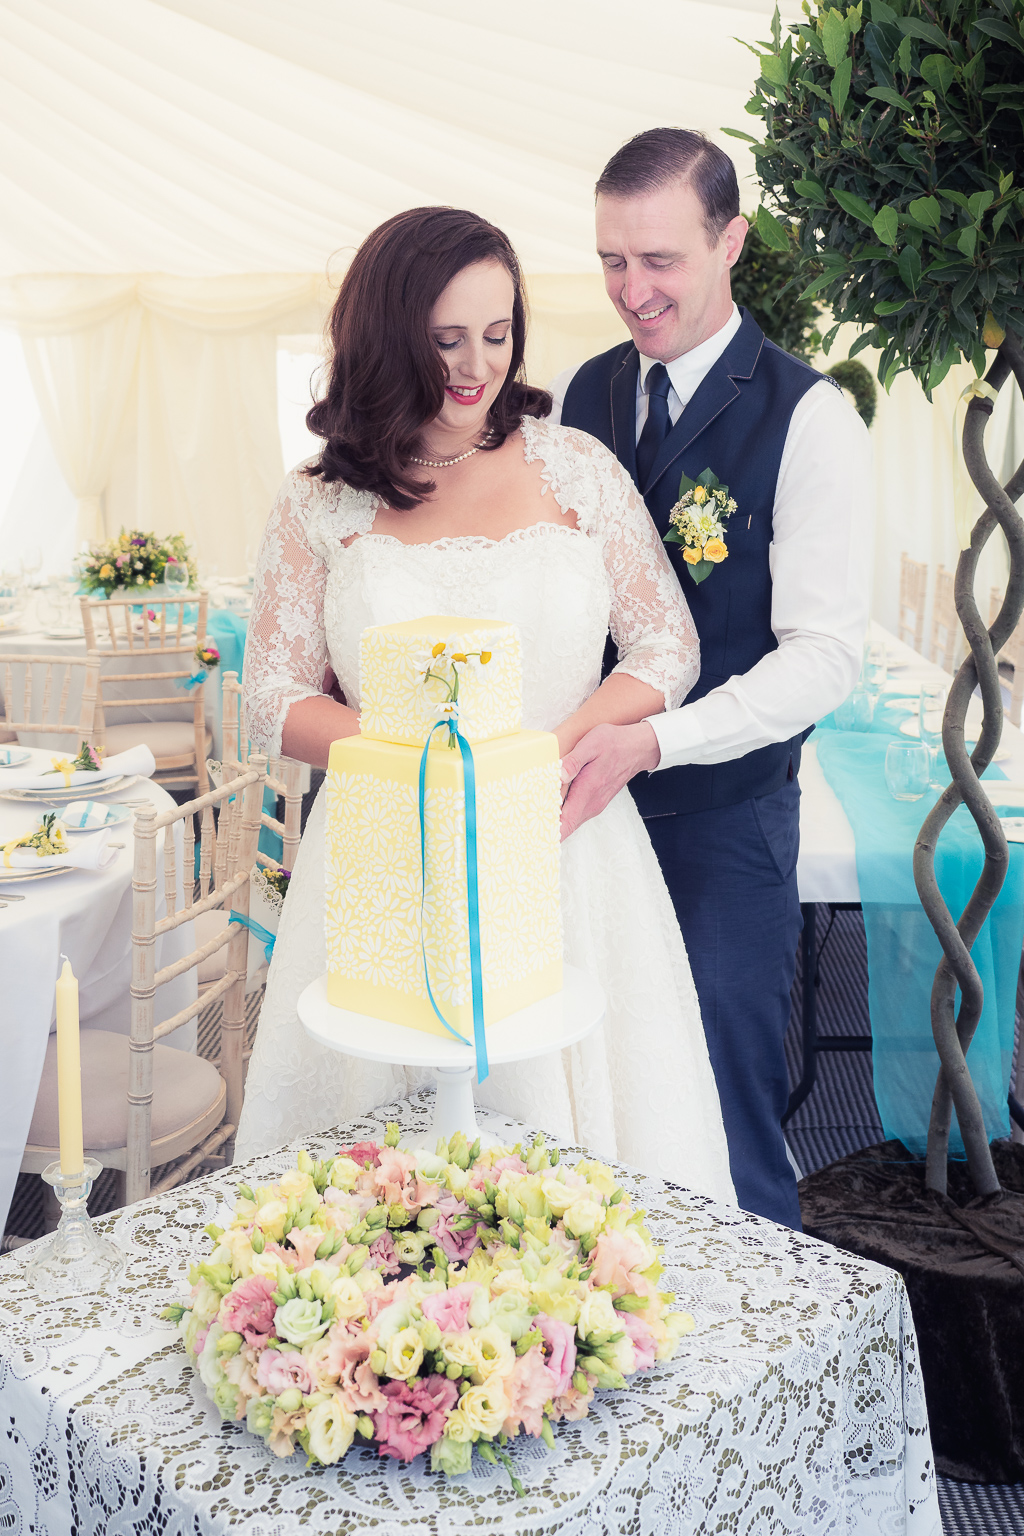 Traditional vintage styled wedding photoshoot at The Orangery Suite, photographer credit Dom Brenton Photography (46)